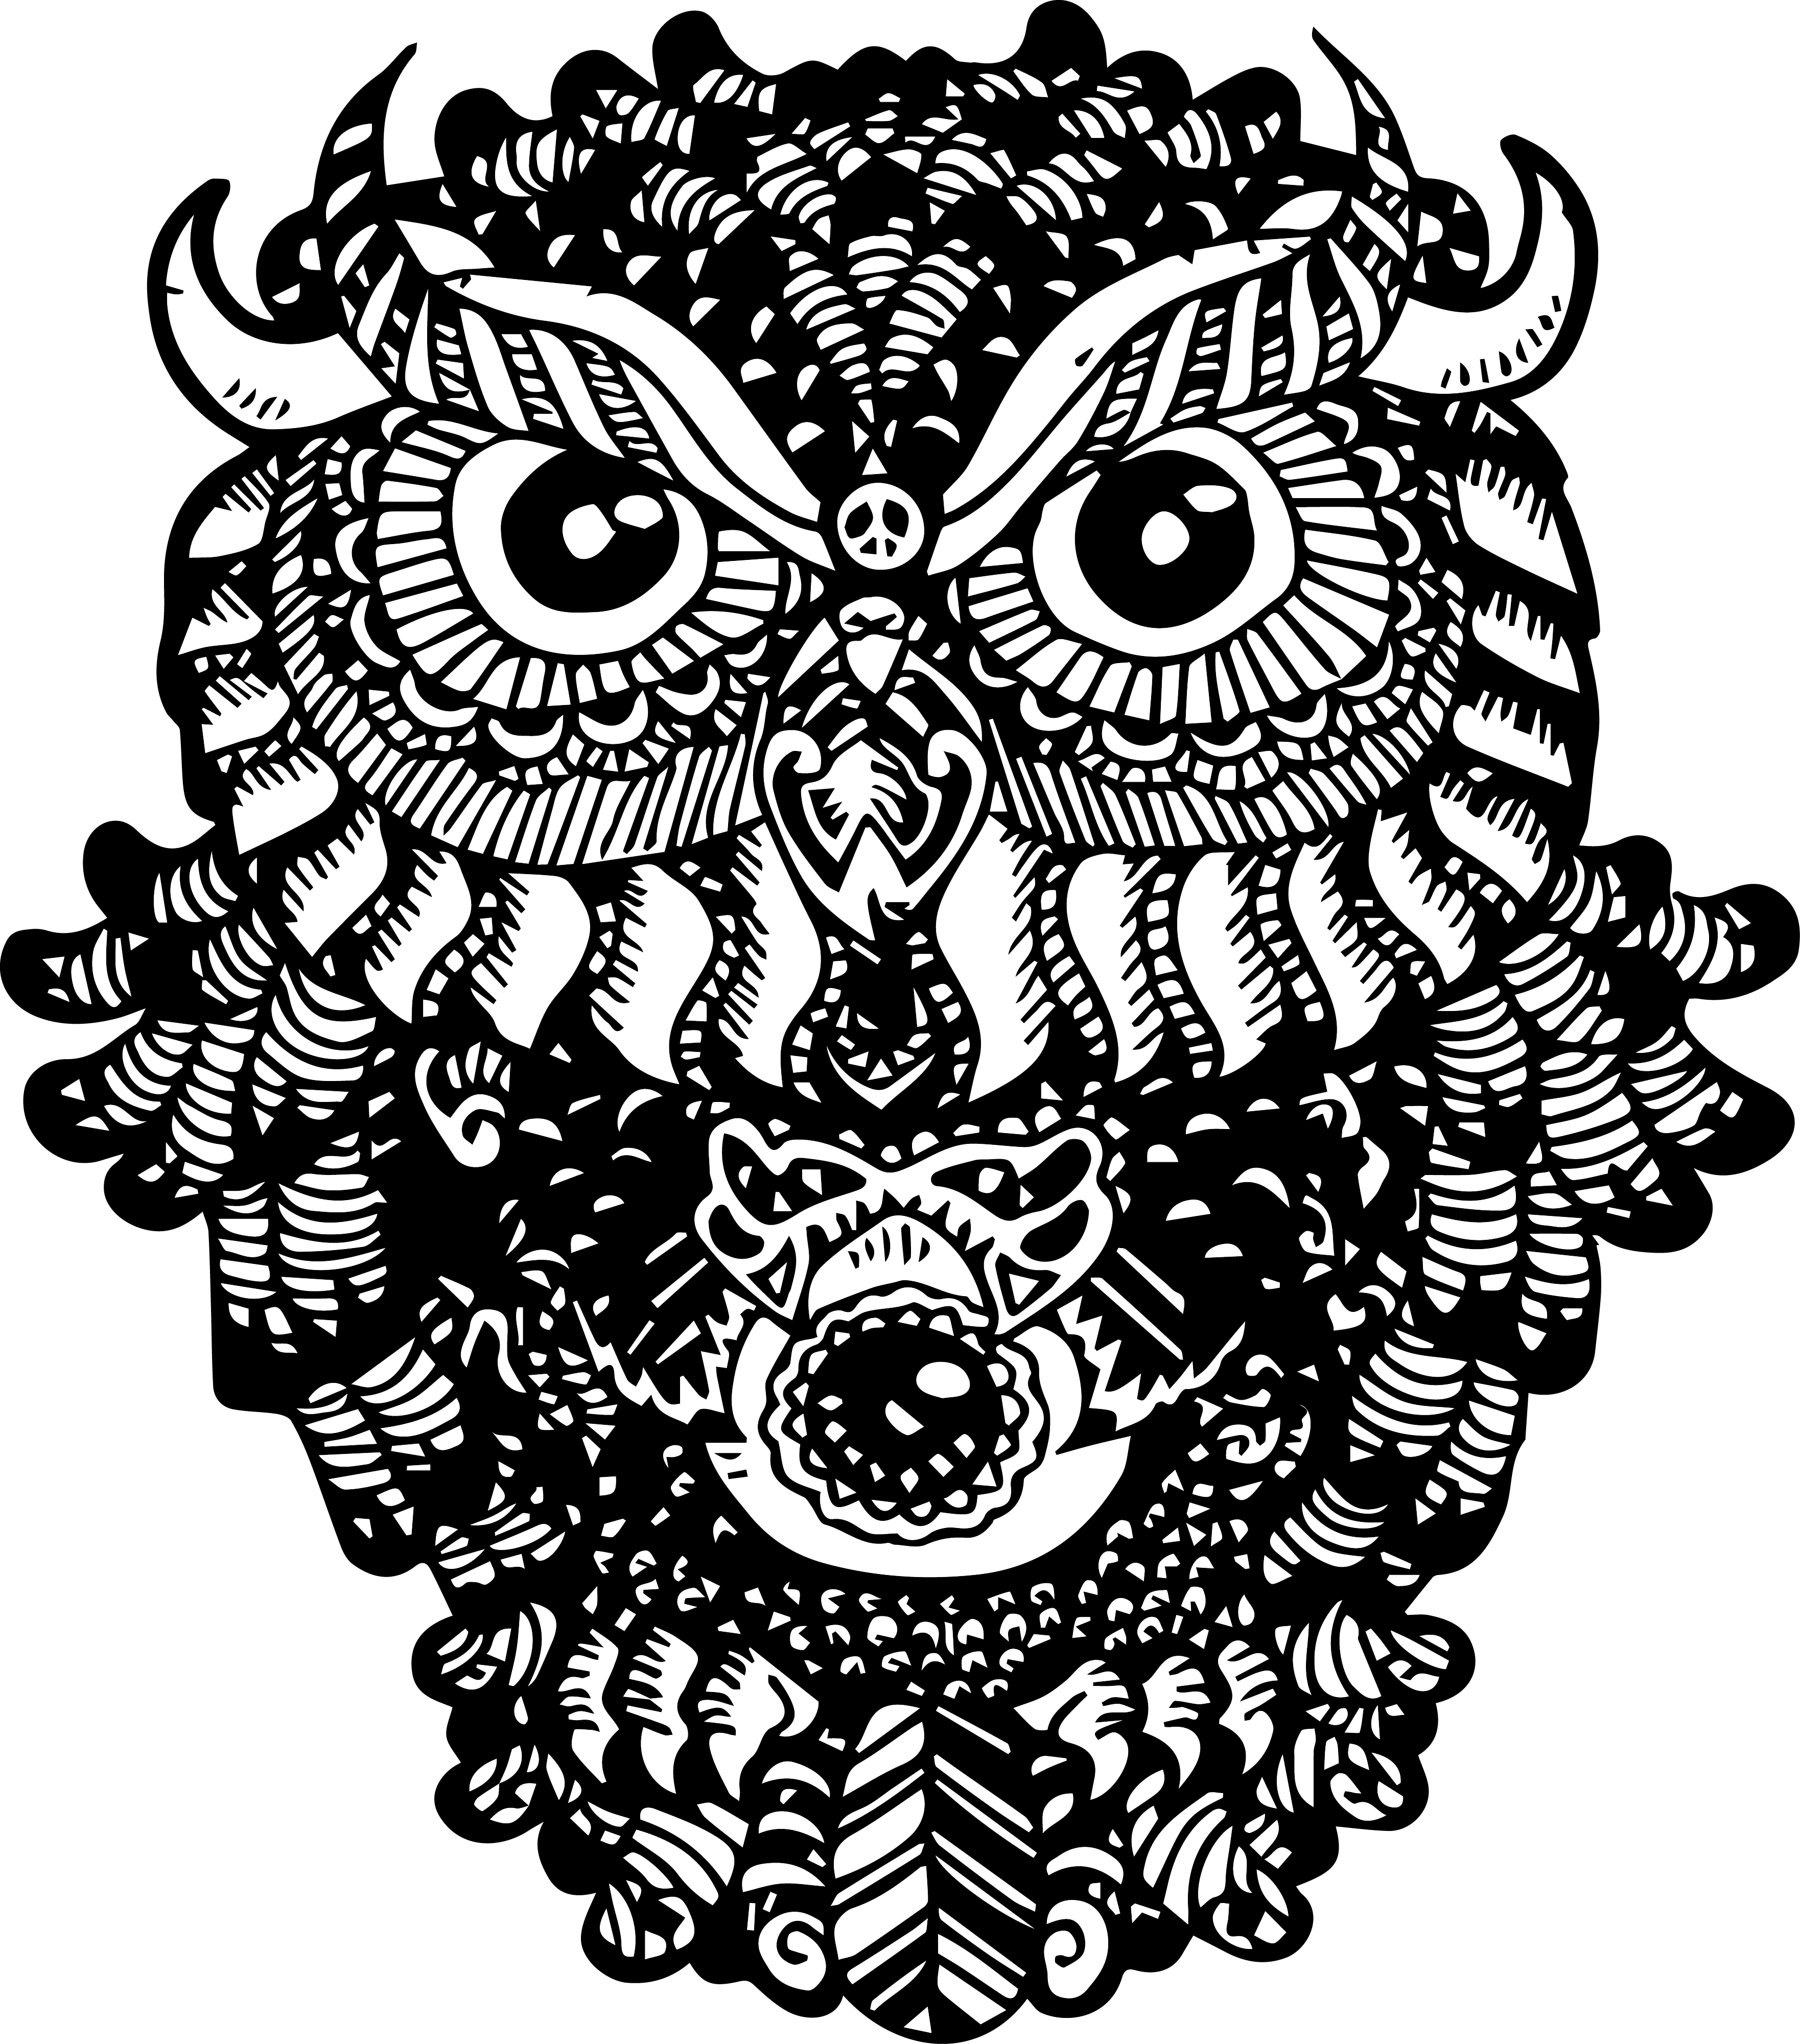 Bark drawing zentangle. Owl this is my